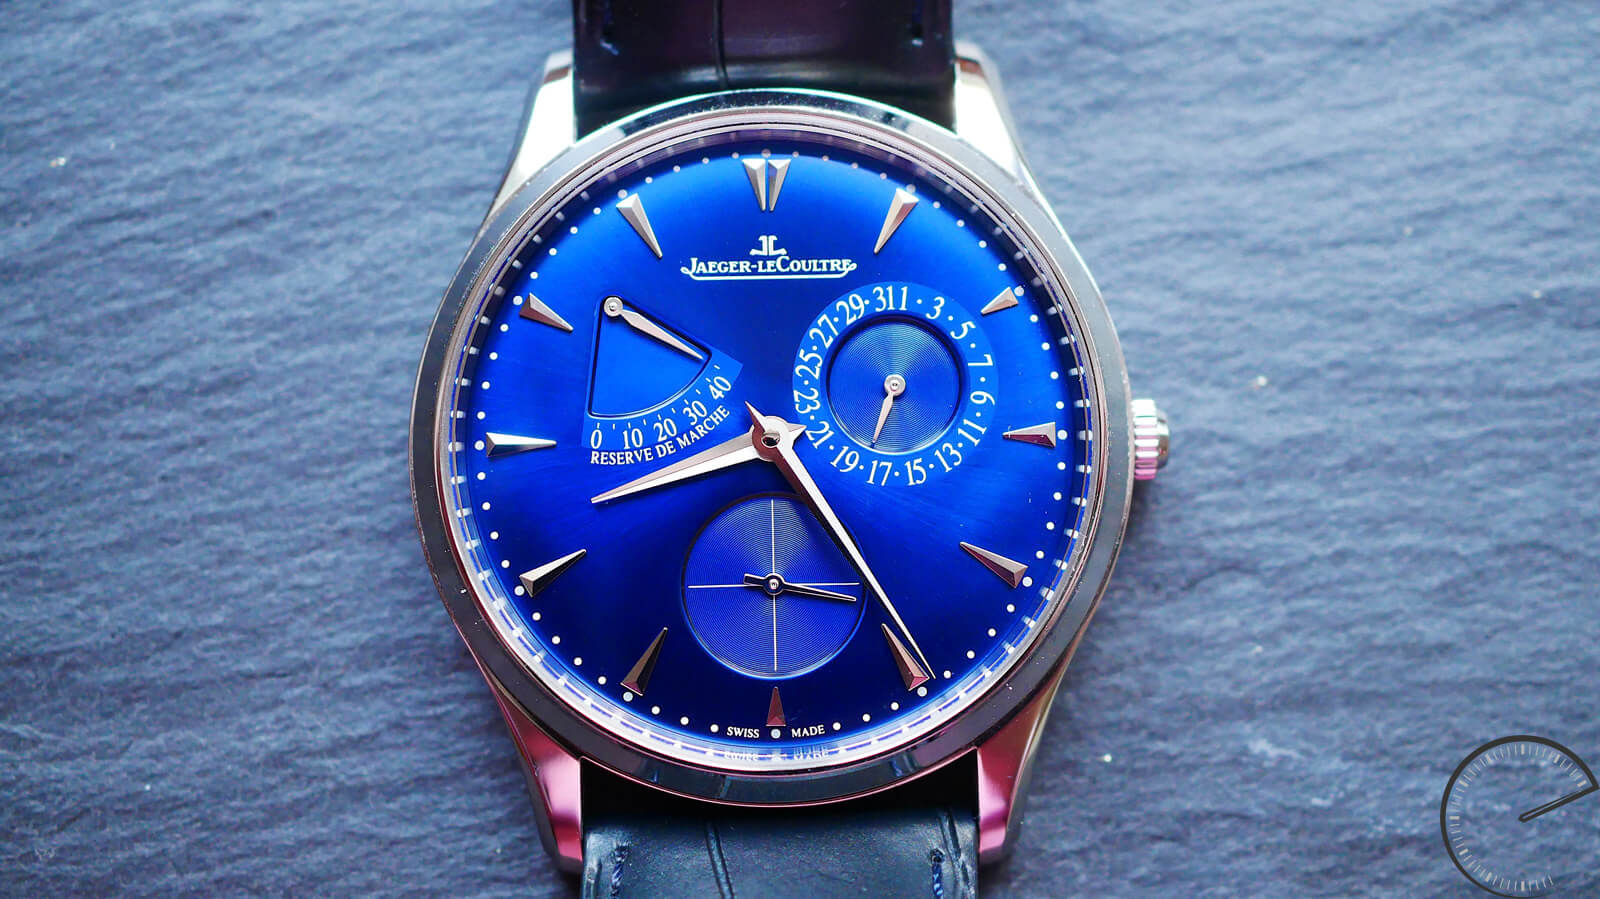 Jaeger-LeCoultre Master Ultra Thin Réserve de Marche - ultra-thin watch with power-reserve display